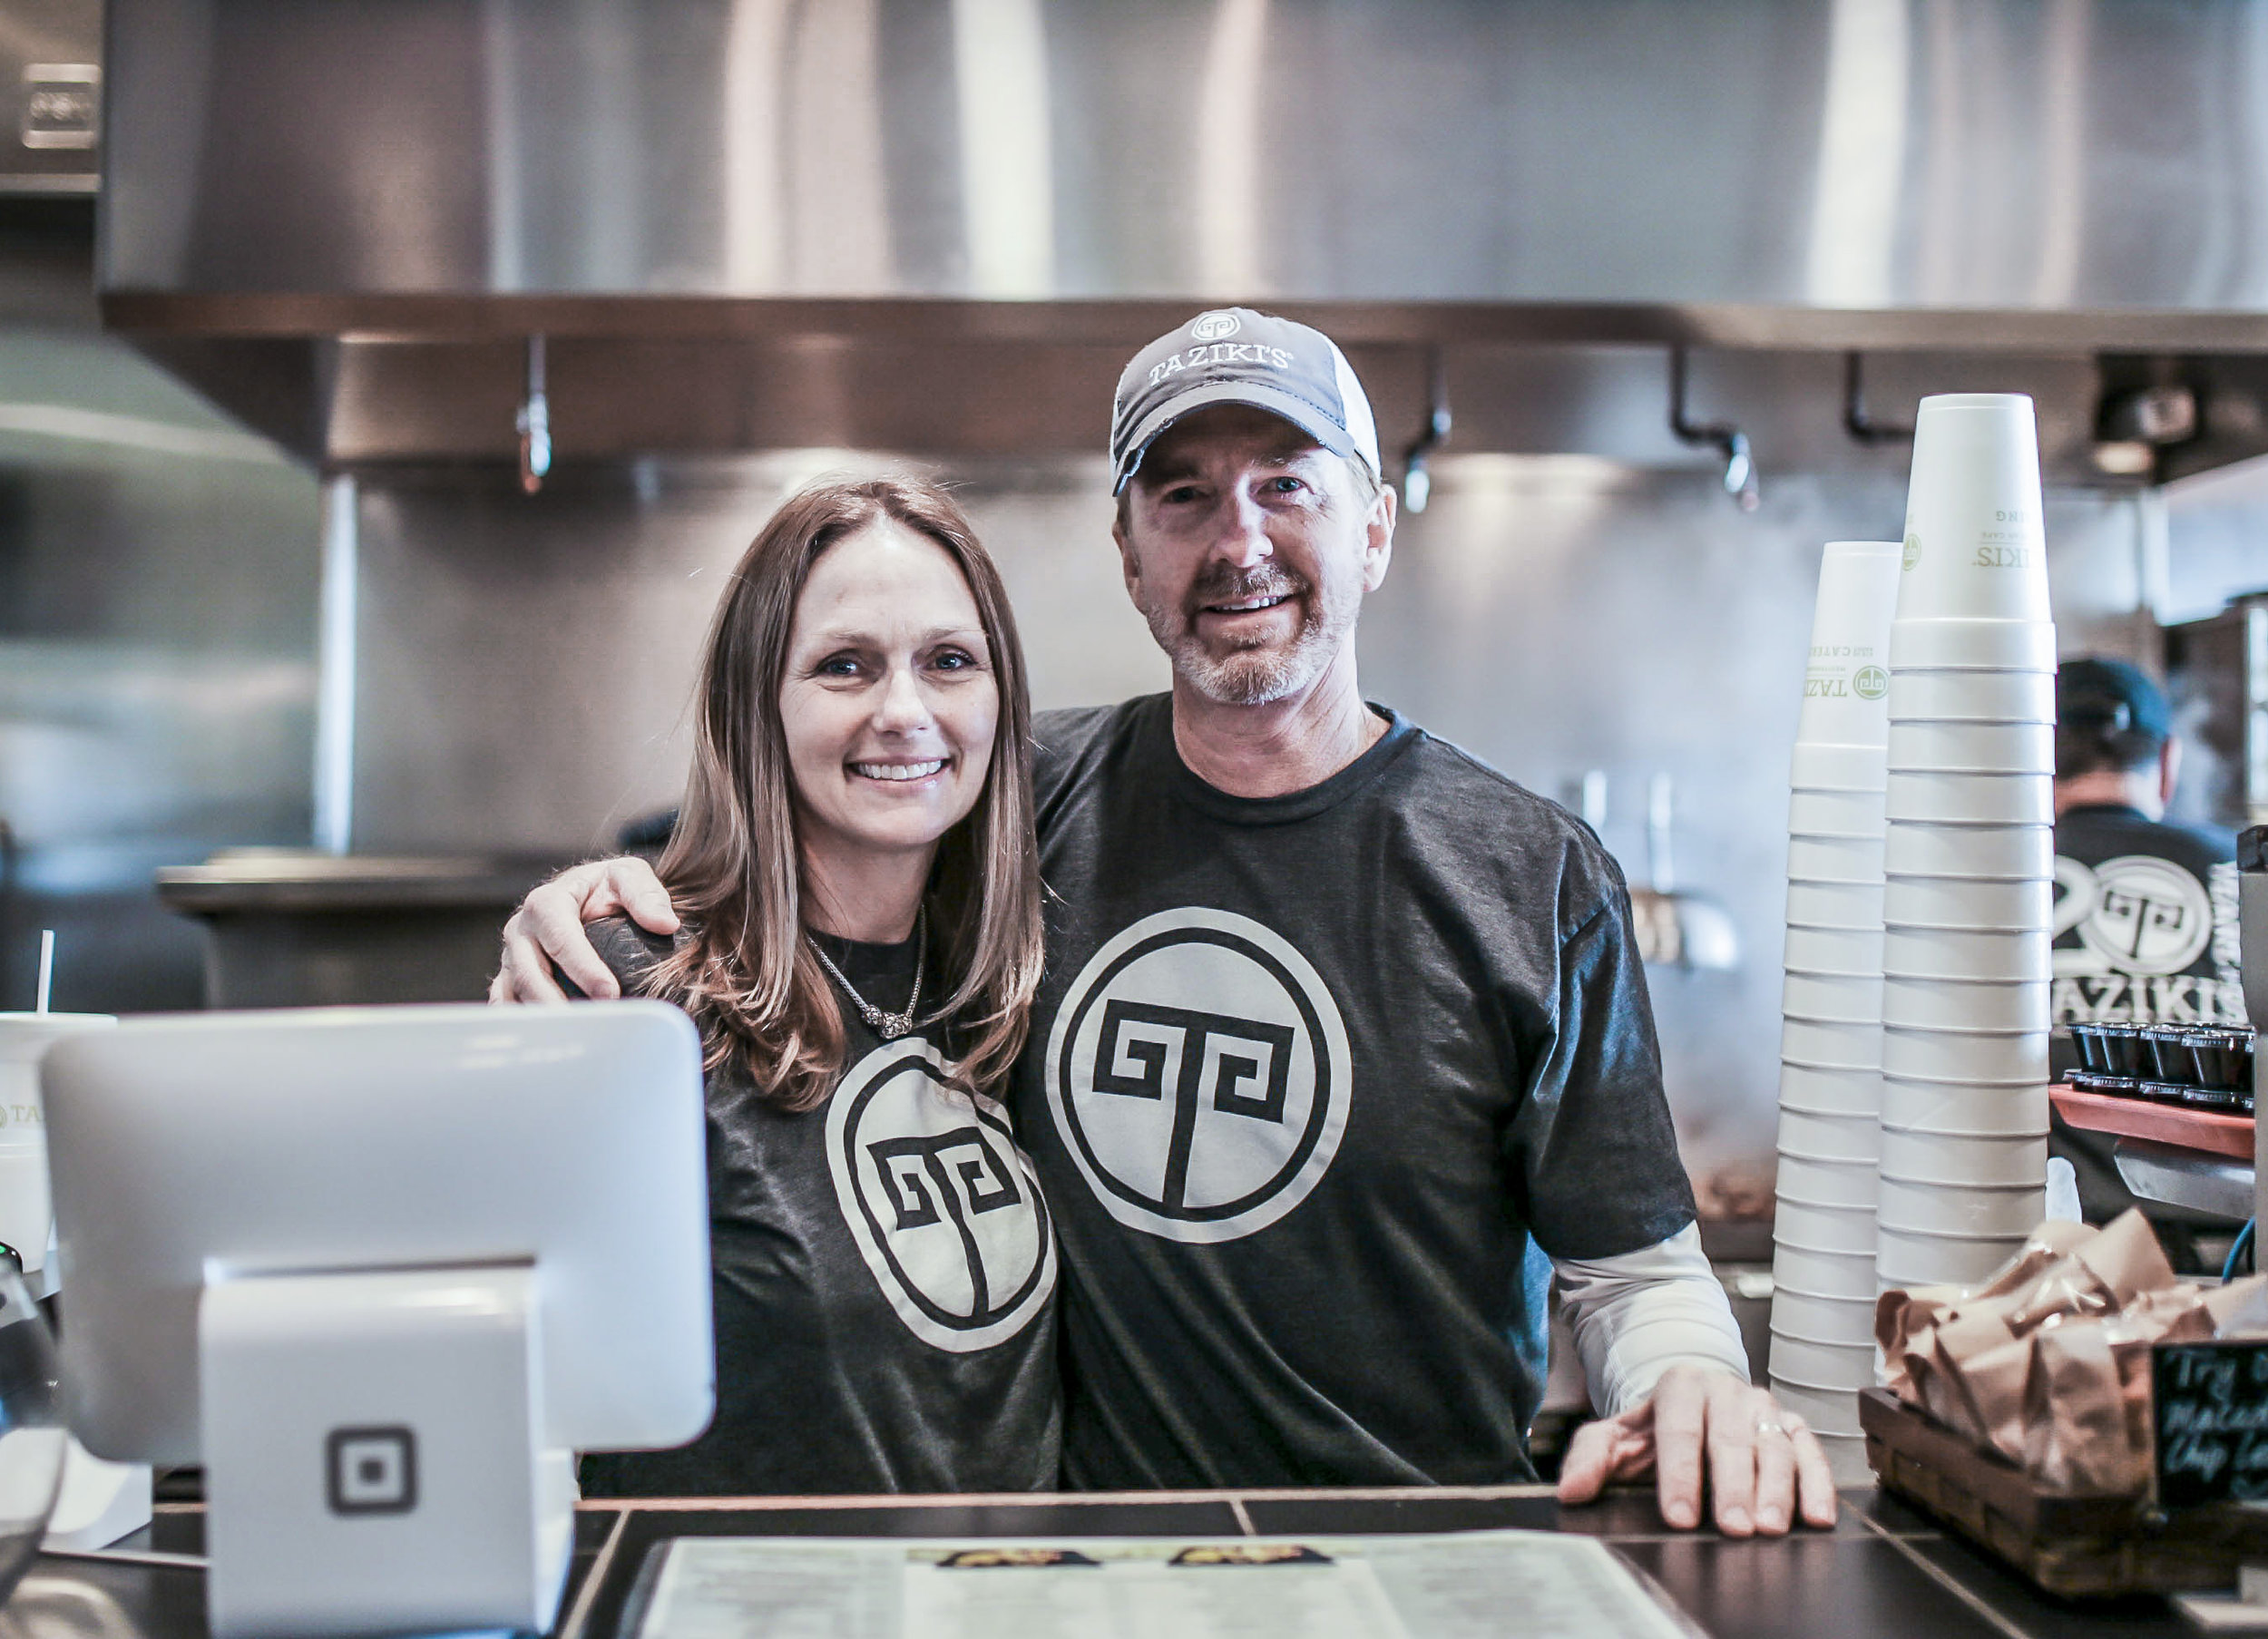 Keith and Amy Richards   Founders of Taziki's Cafe